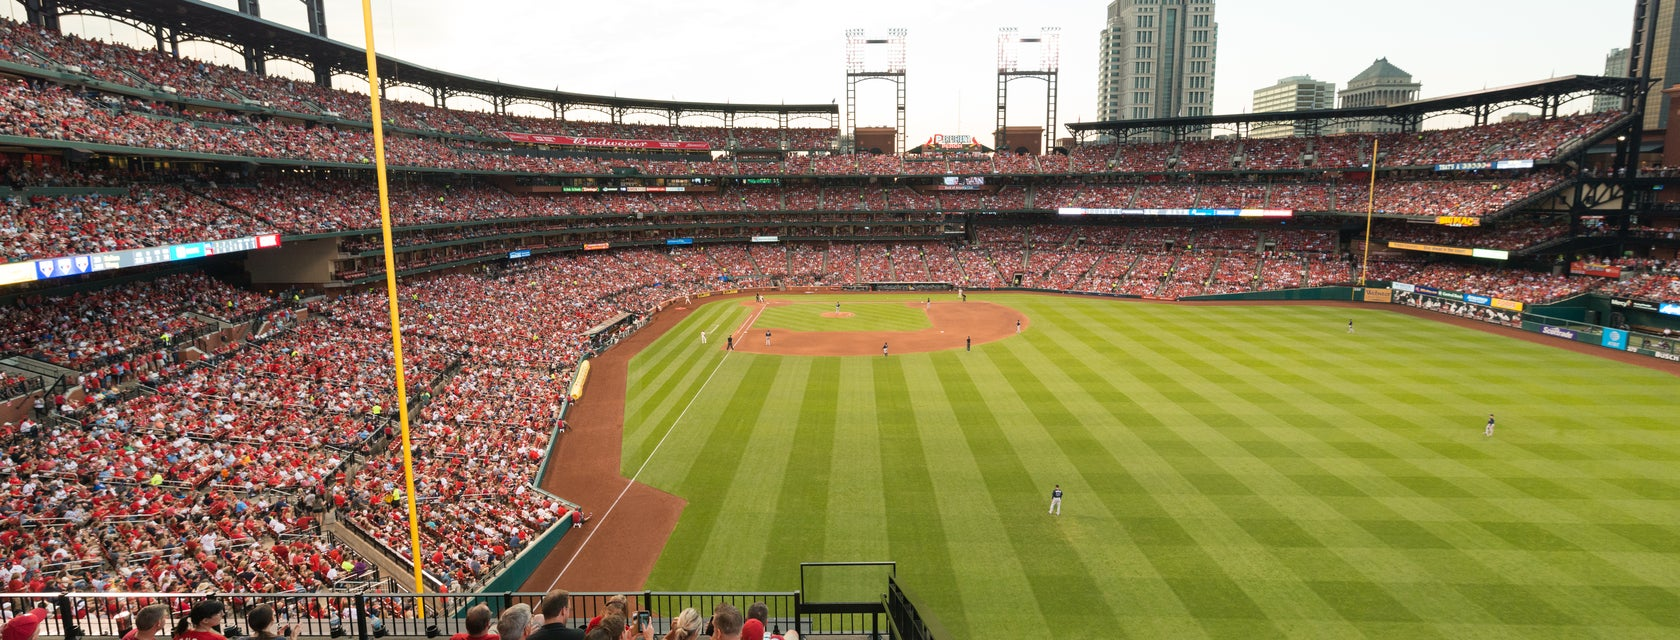 Seat view from Red Jacket Club